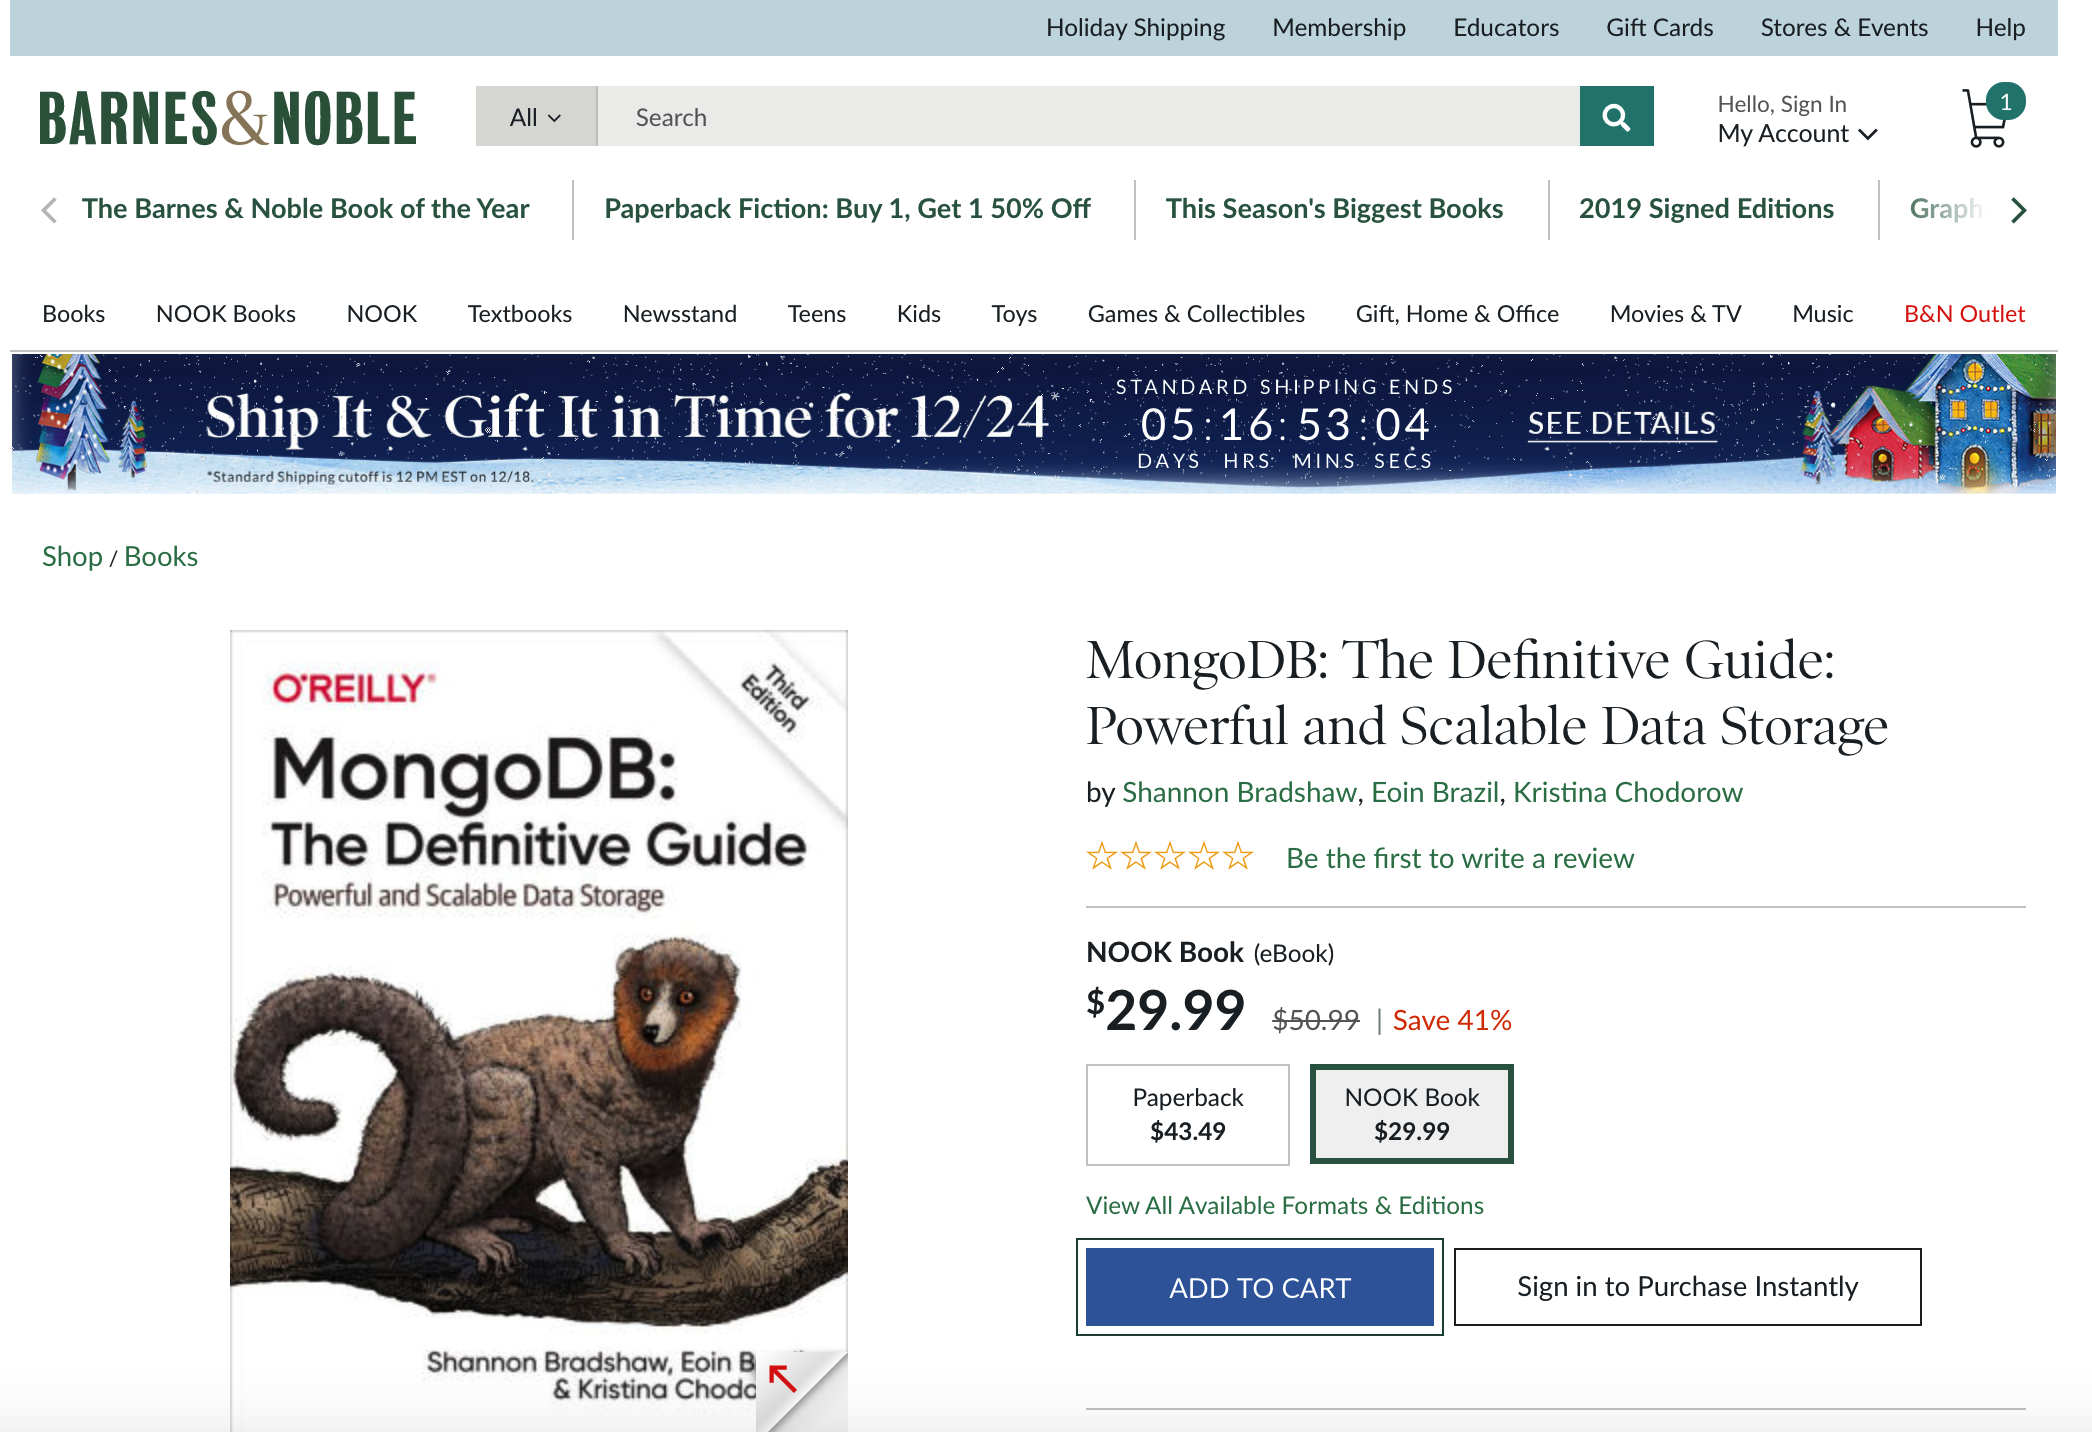 MongoDB: The Definitive Guide, 3rd Edition - Barnes & Noble